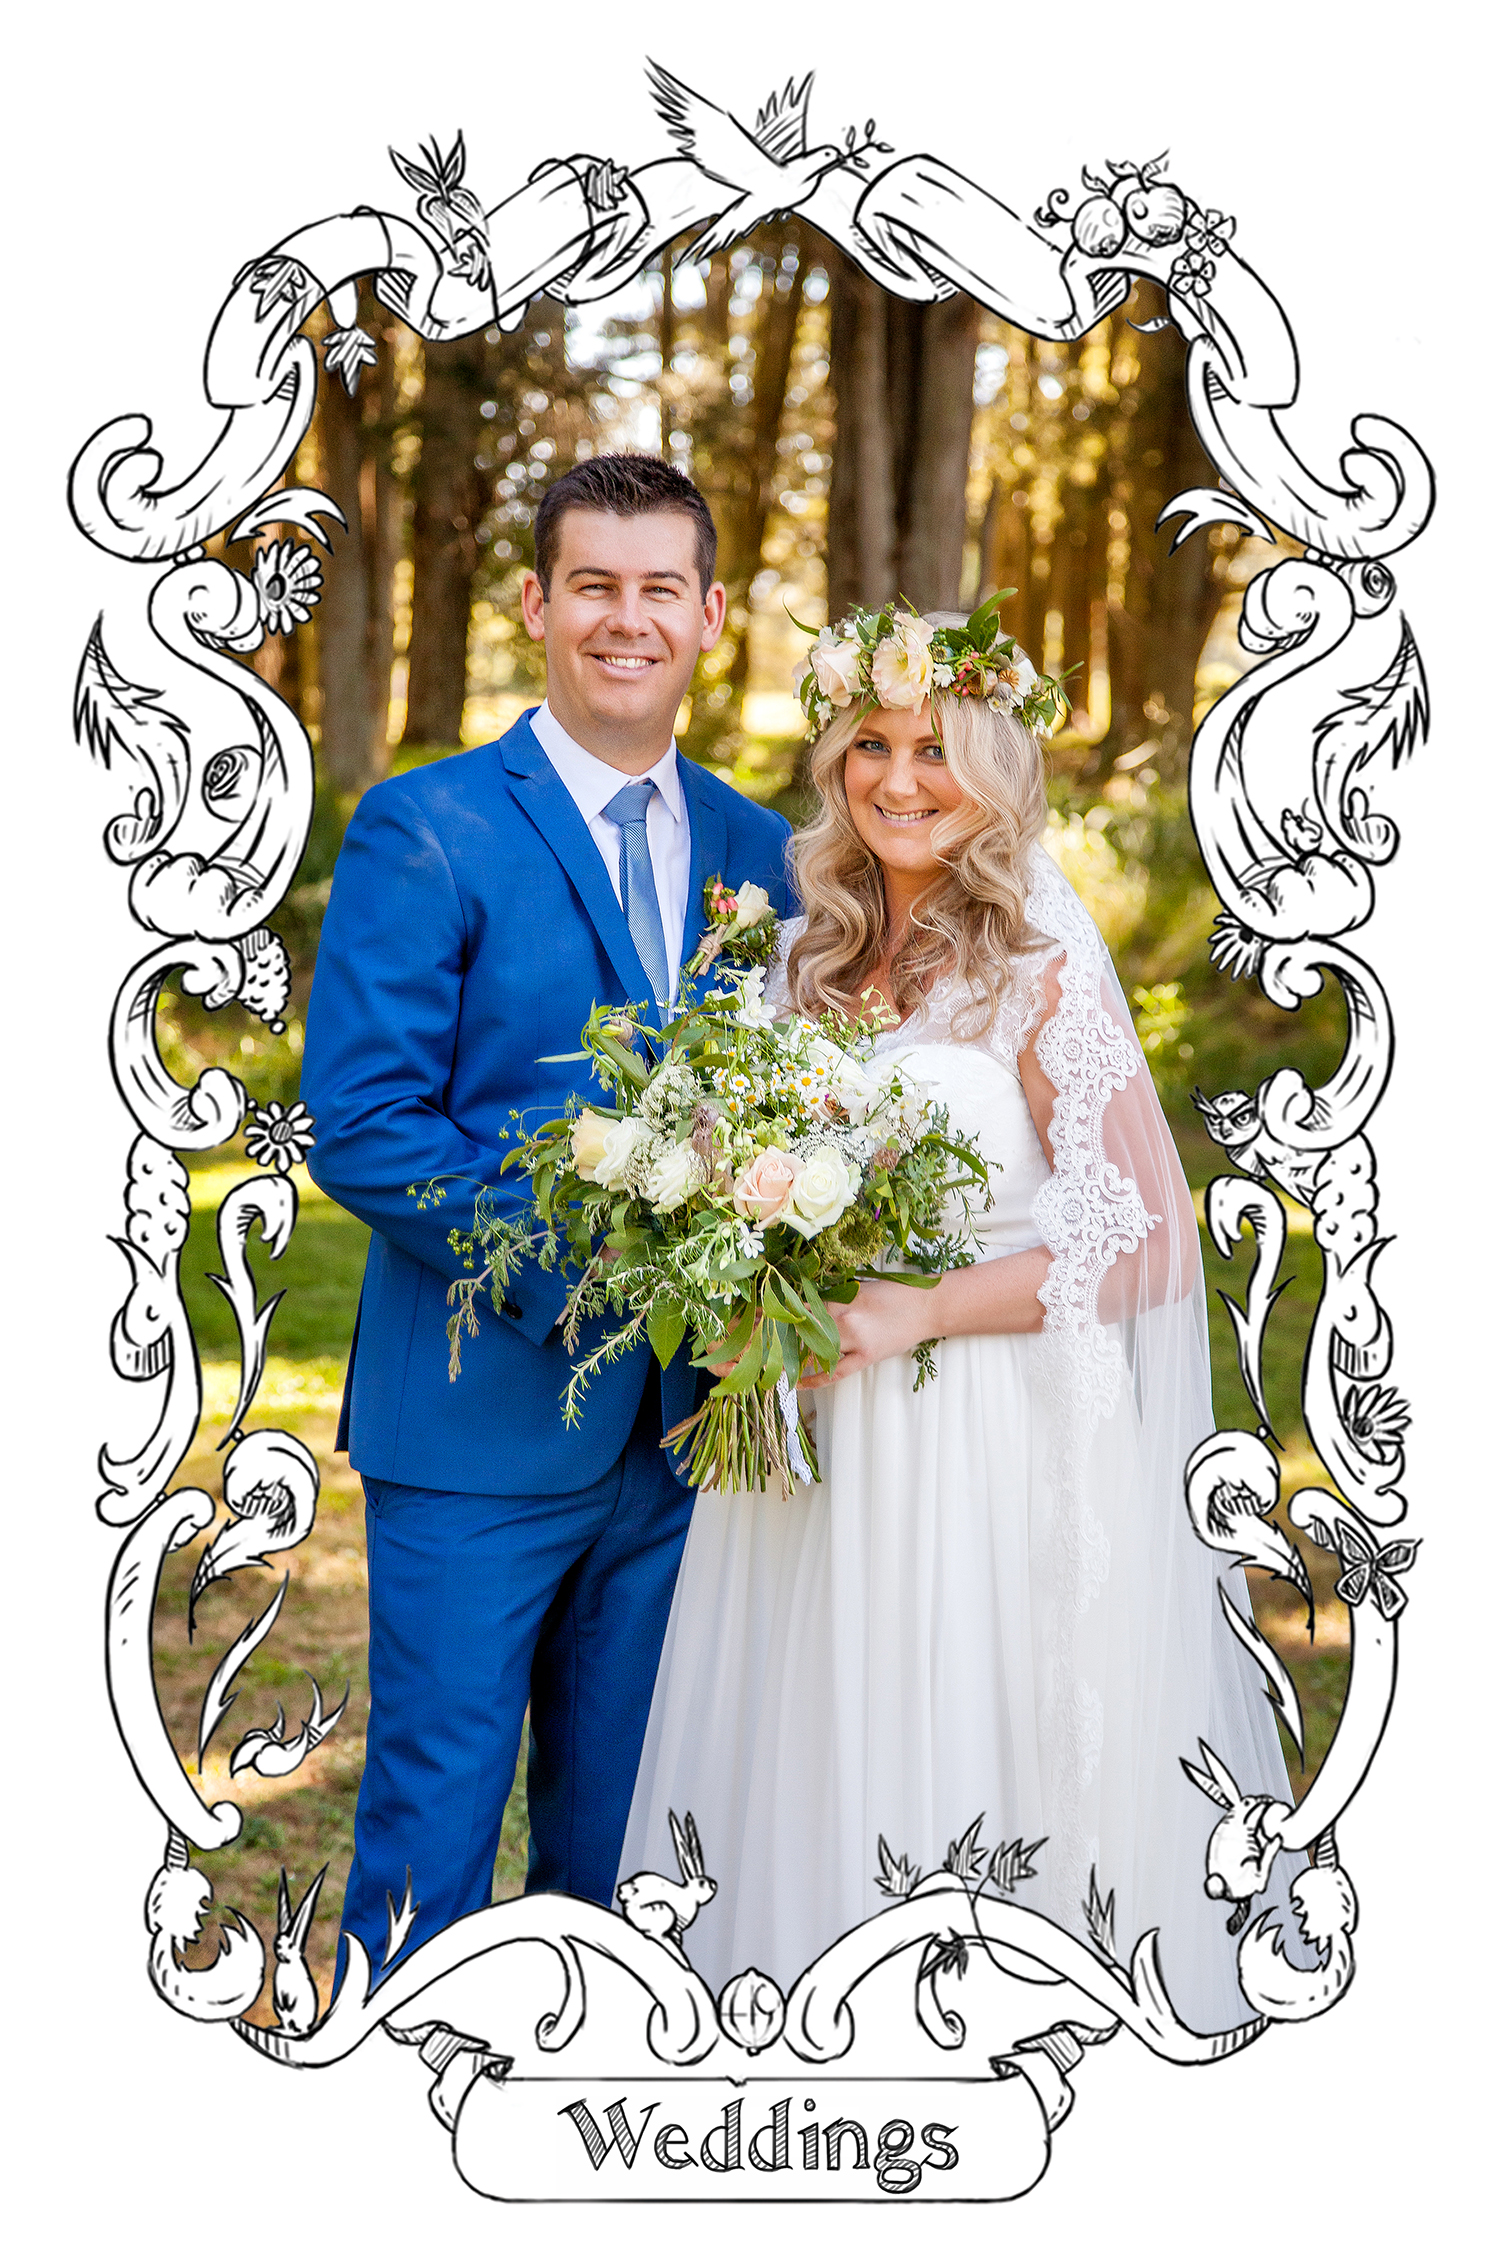 The Undefined Photography Weddings 2018